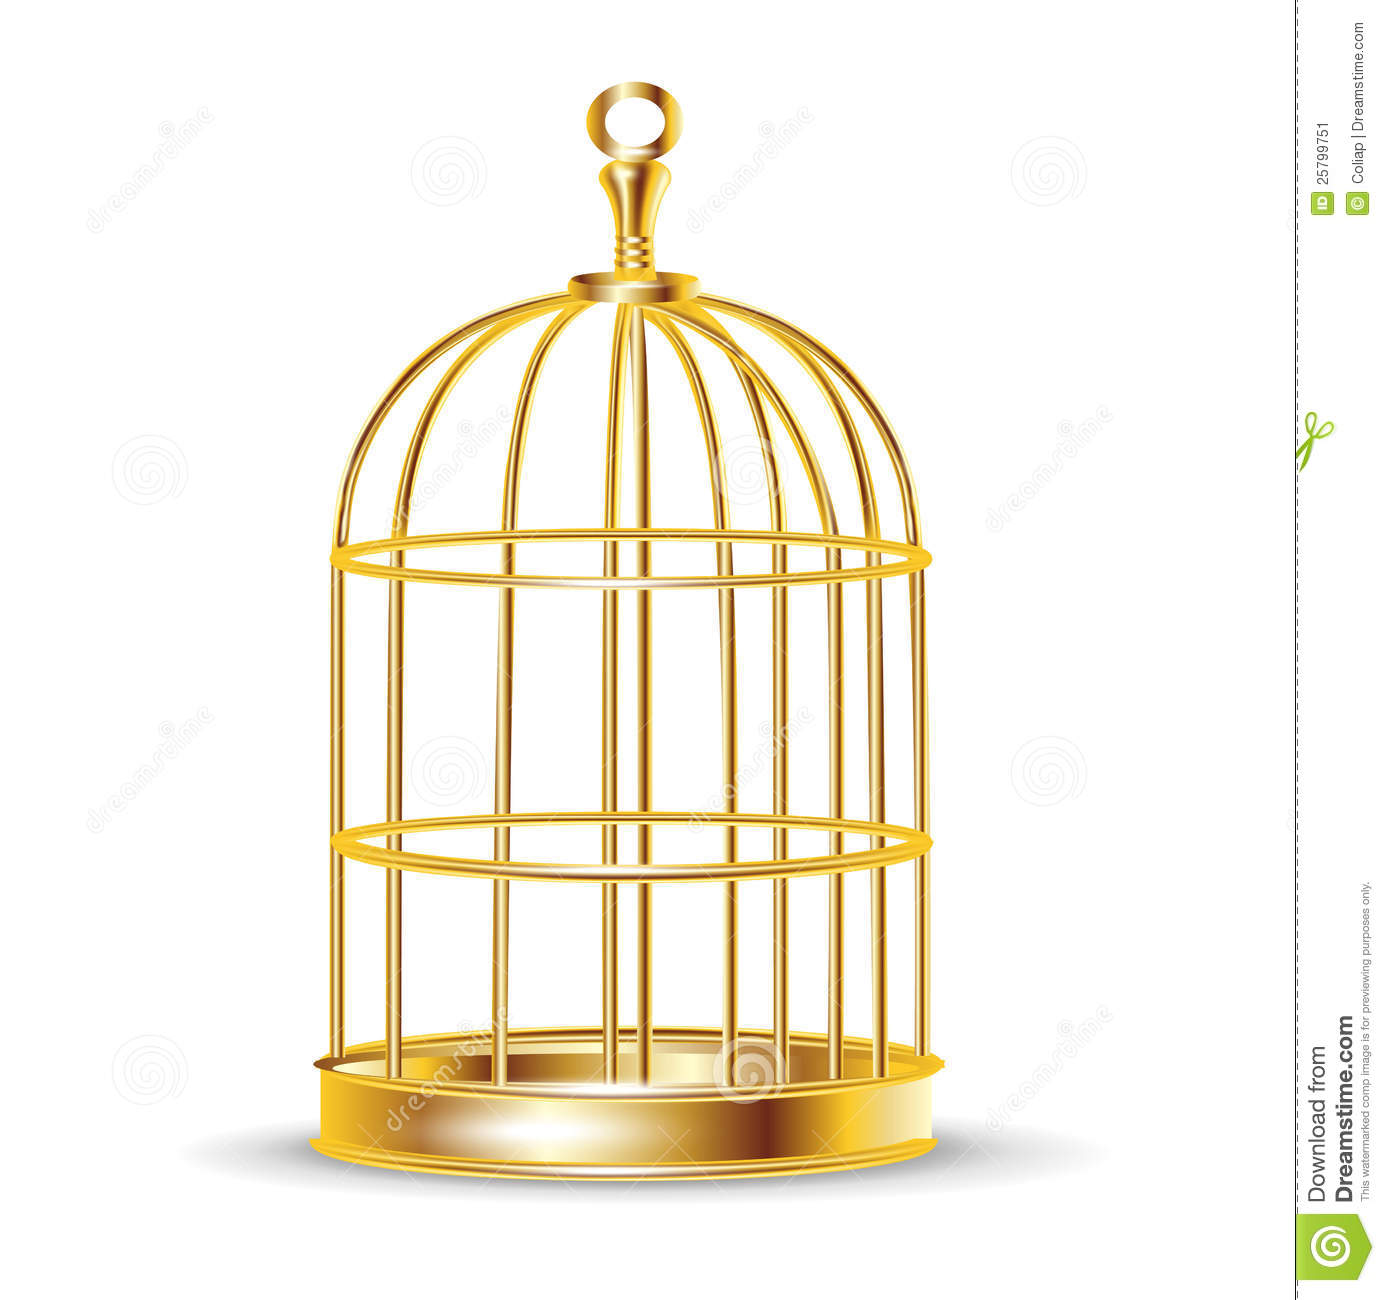 Golden Bird Cage Stock Image - Image: 25799751: www.dreamstime.com/stock-image-golden-bird-cage-image25799751